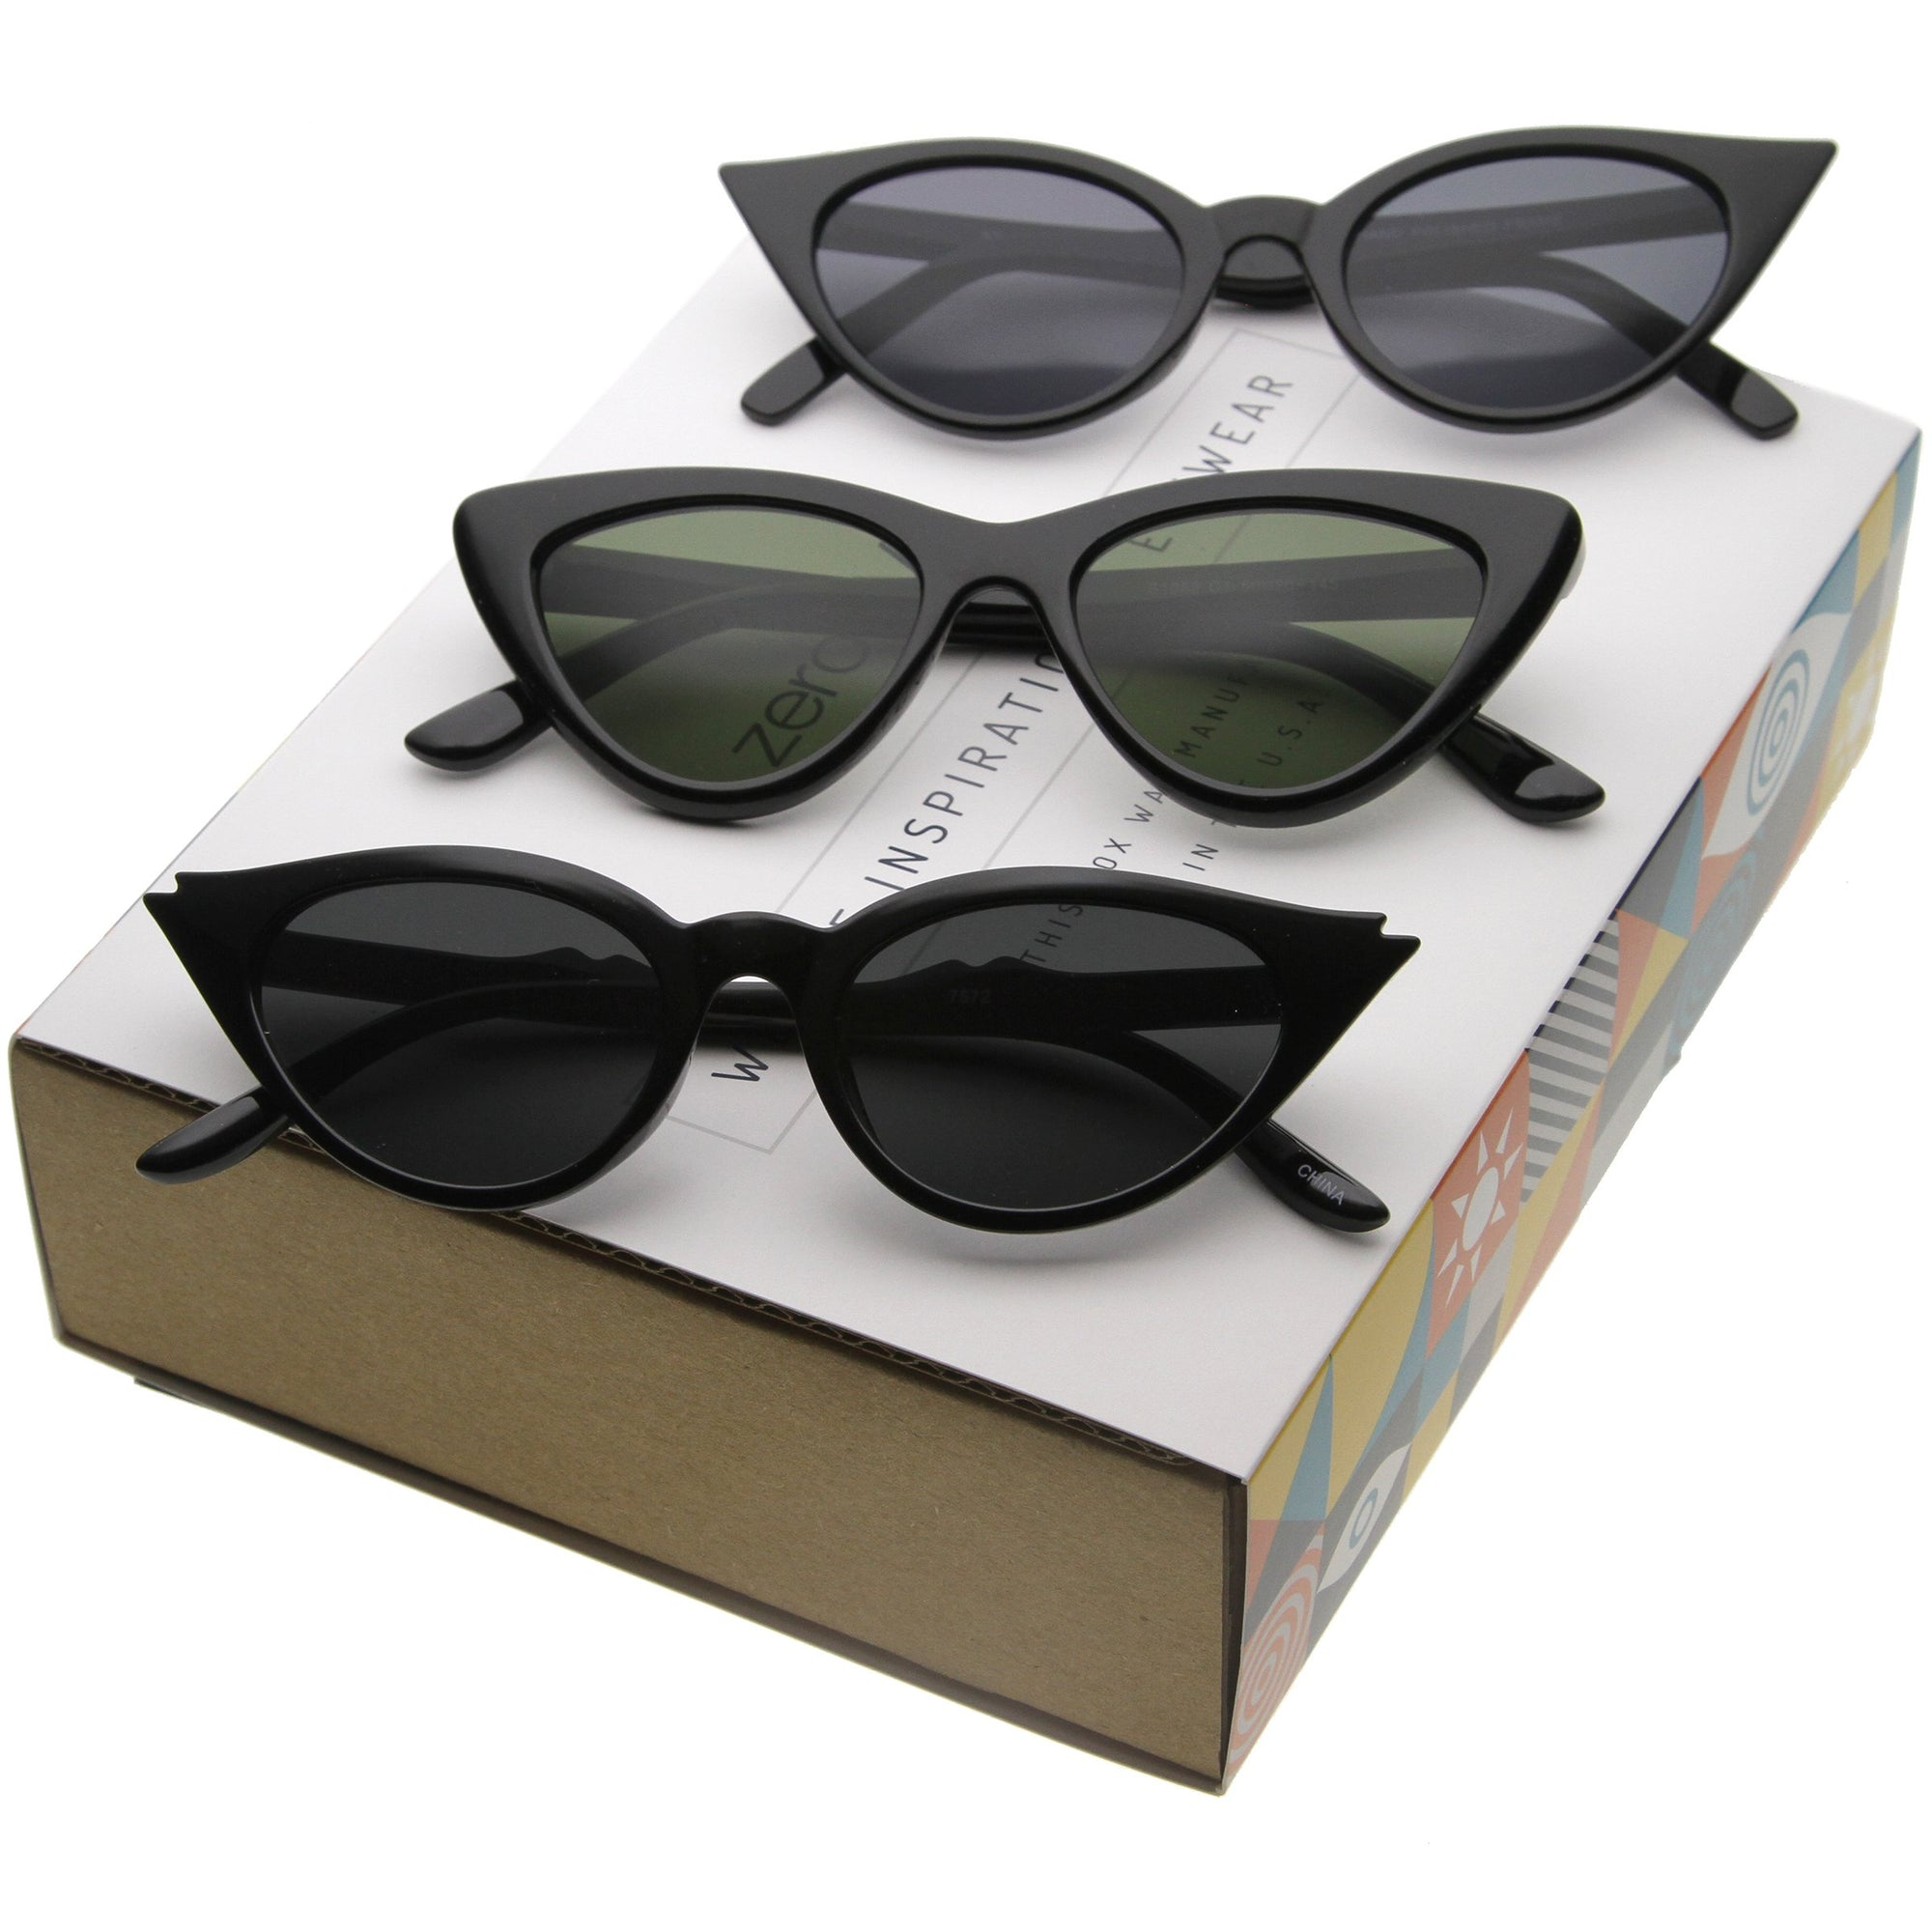 Women's Small Retro Pointed Cat Eye Sunglasses C758 [Promo Box]